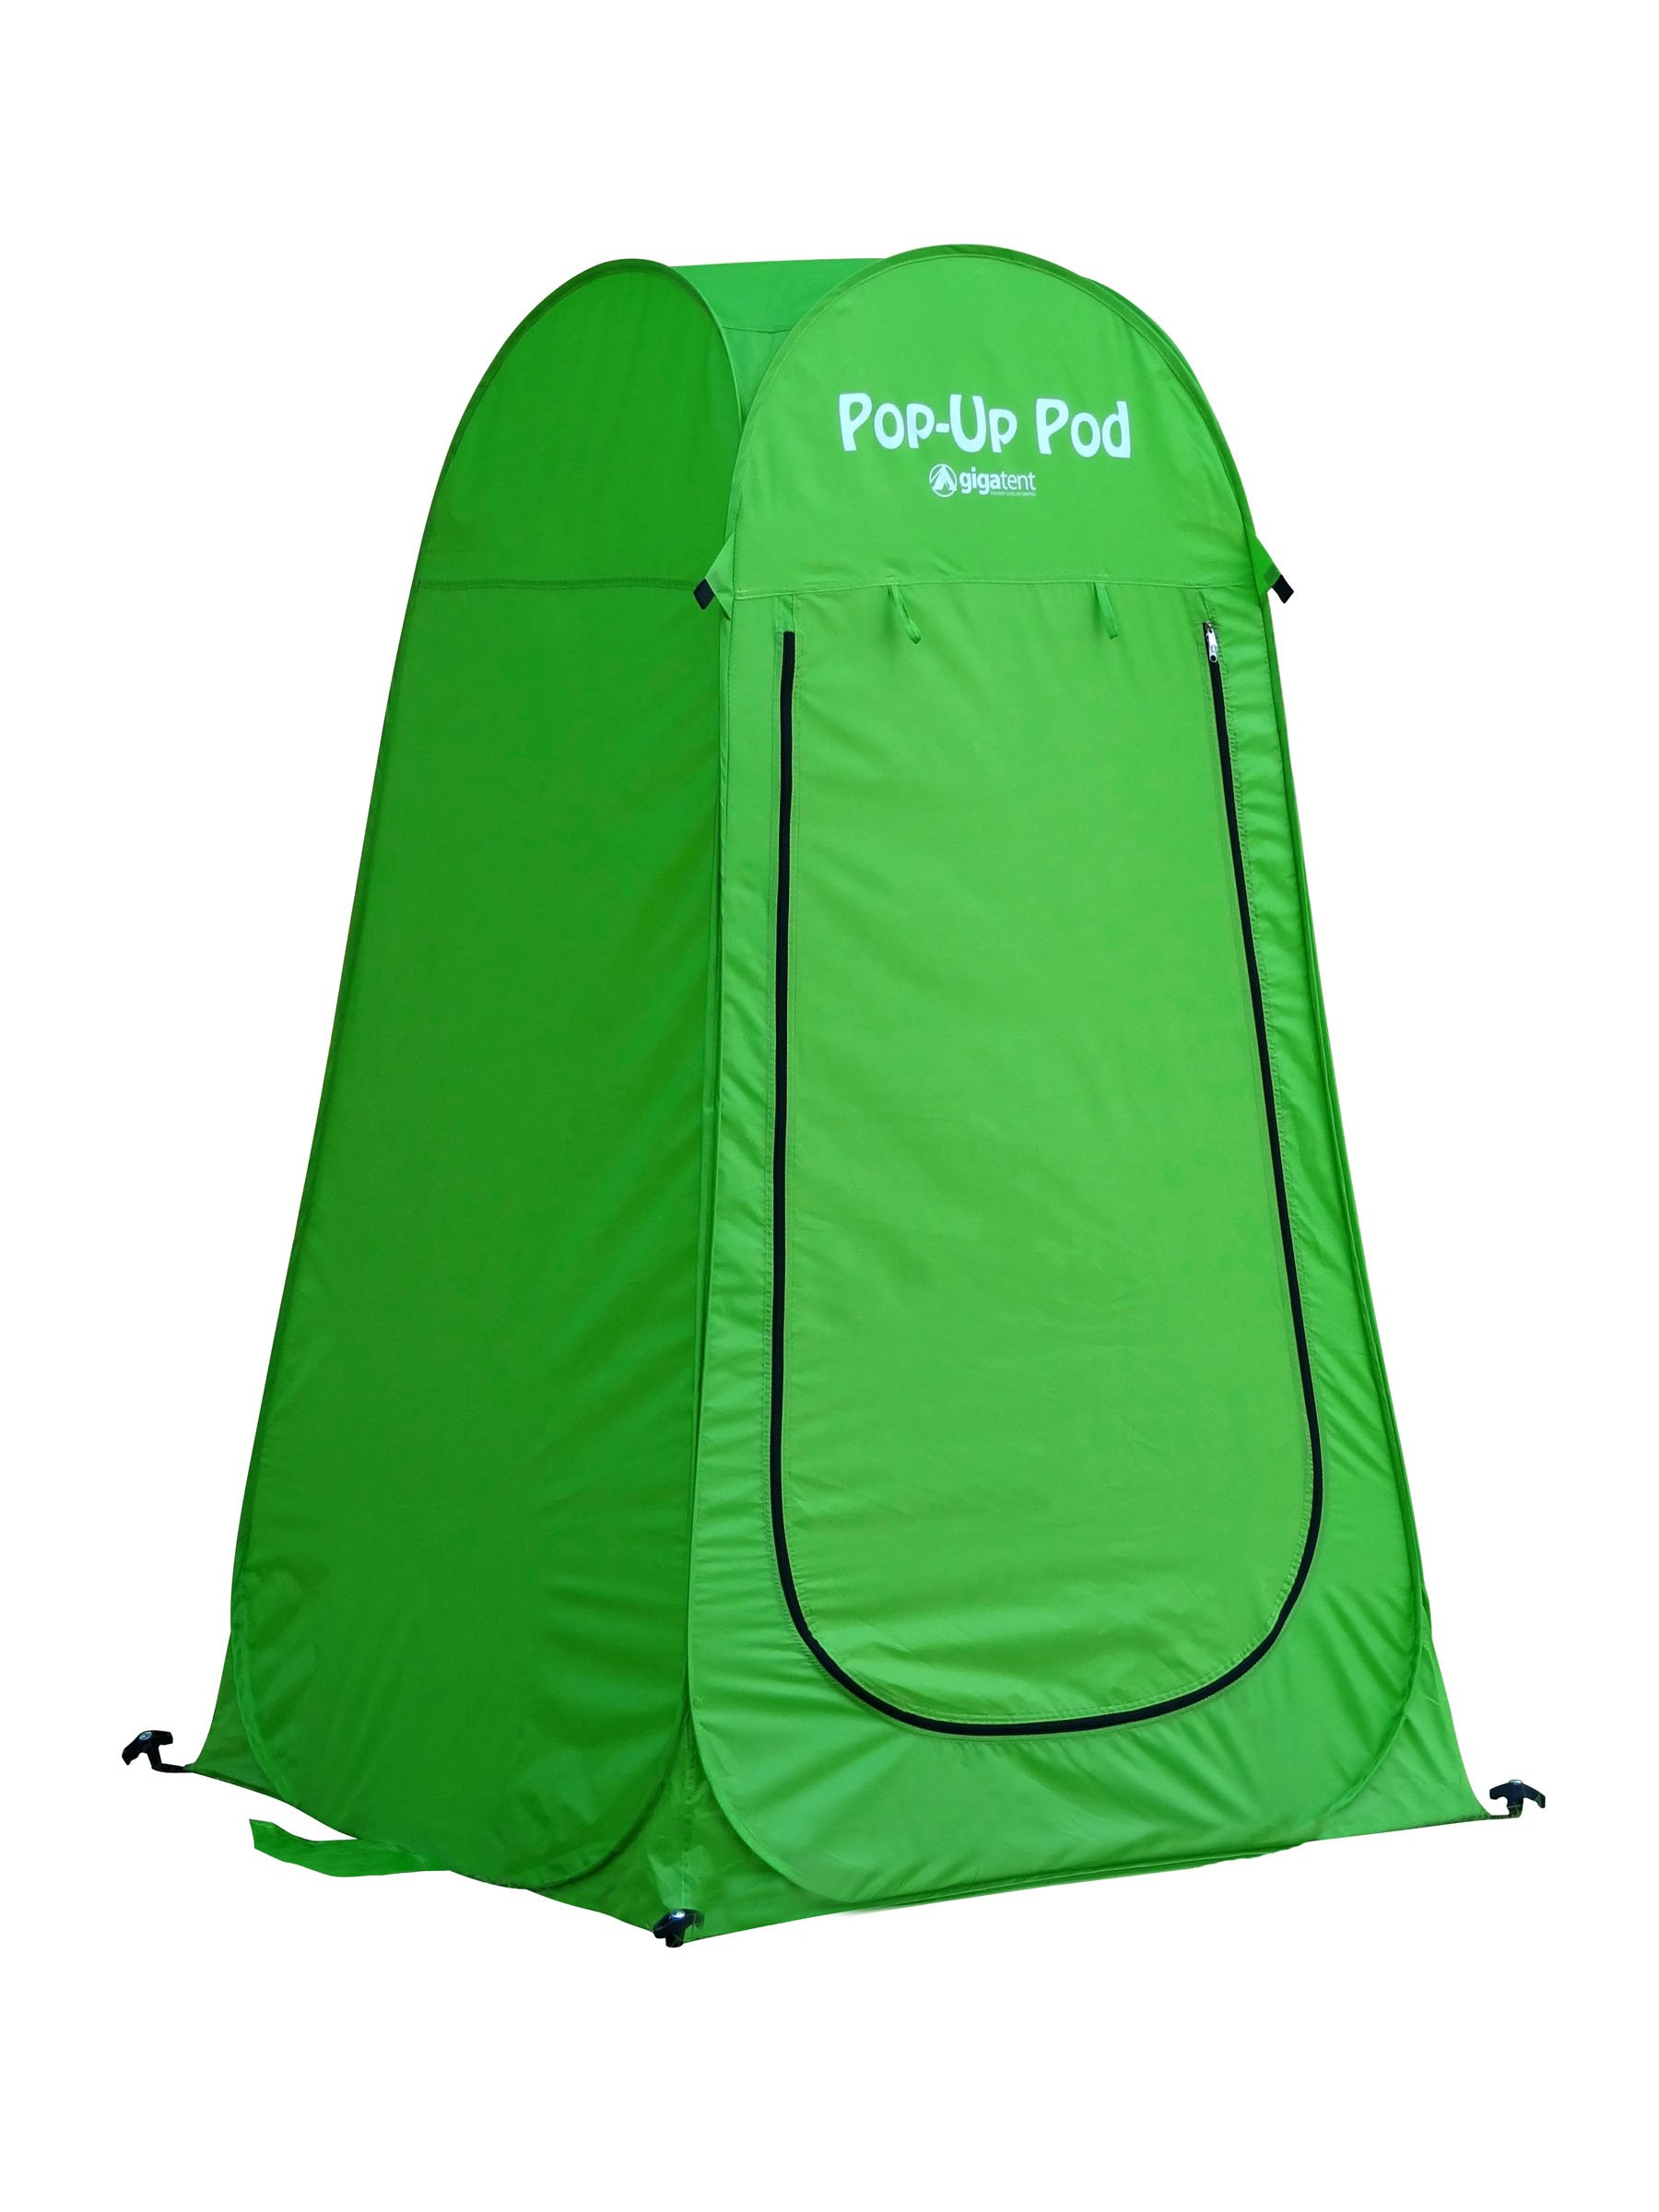 Details about Pop Up Pod Privacy Shelter Portable Camping Changing Room Outdoor Toilet Room